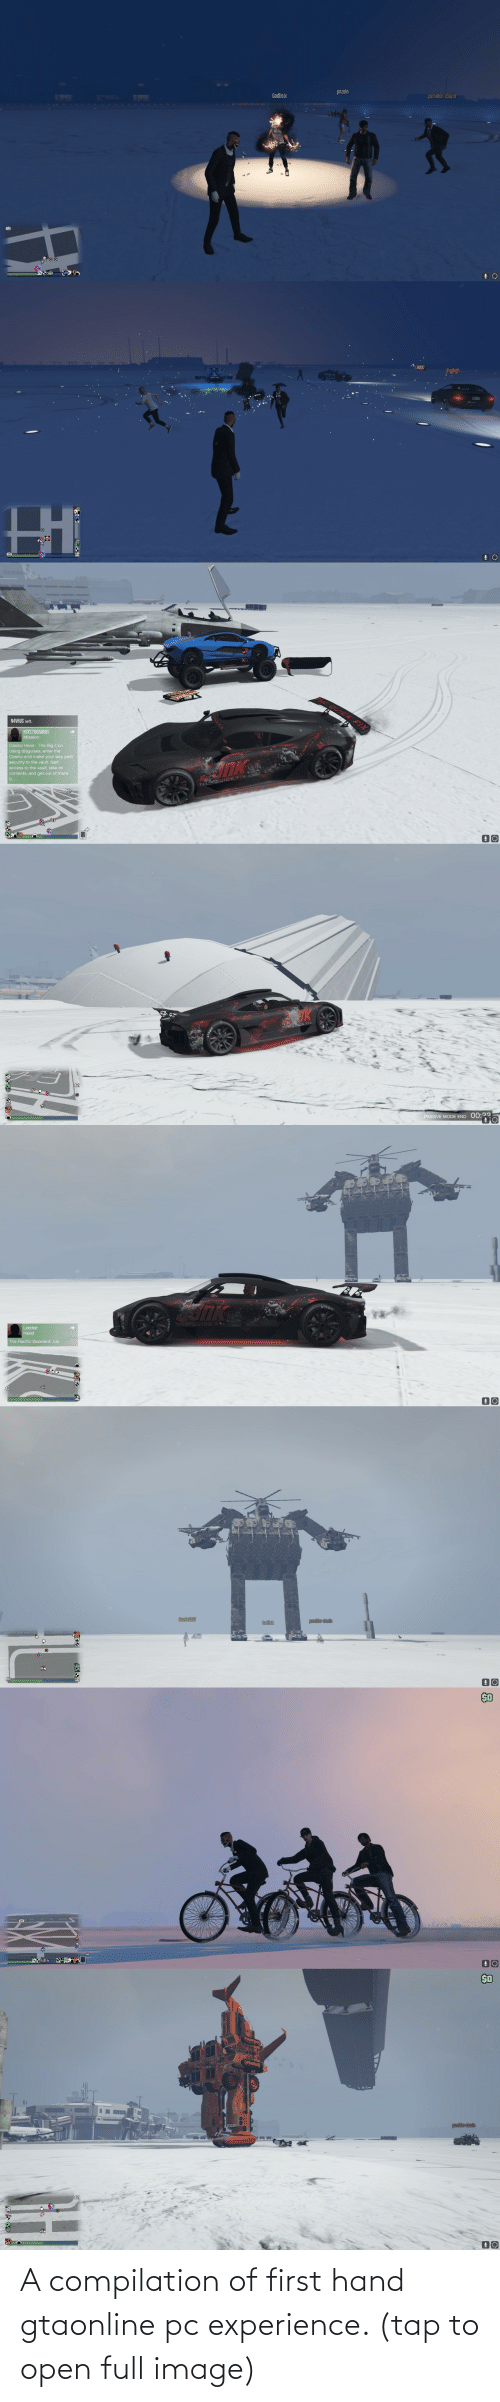 compilation: A compilation of first hand gtaonline pc experience. (tap to open full image)